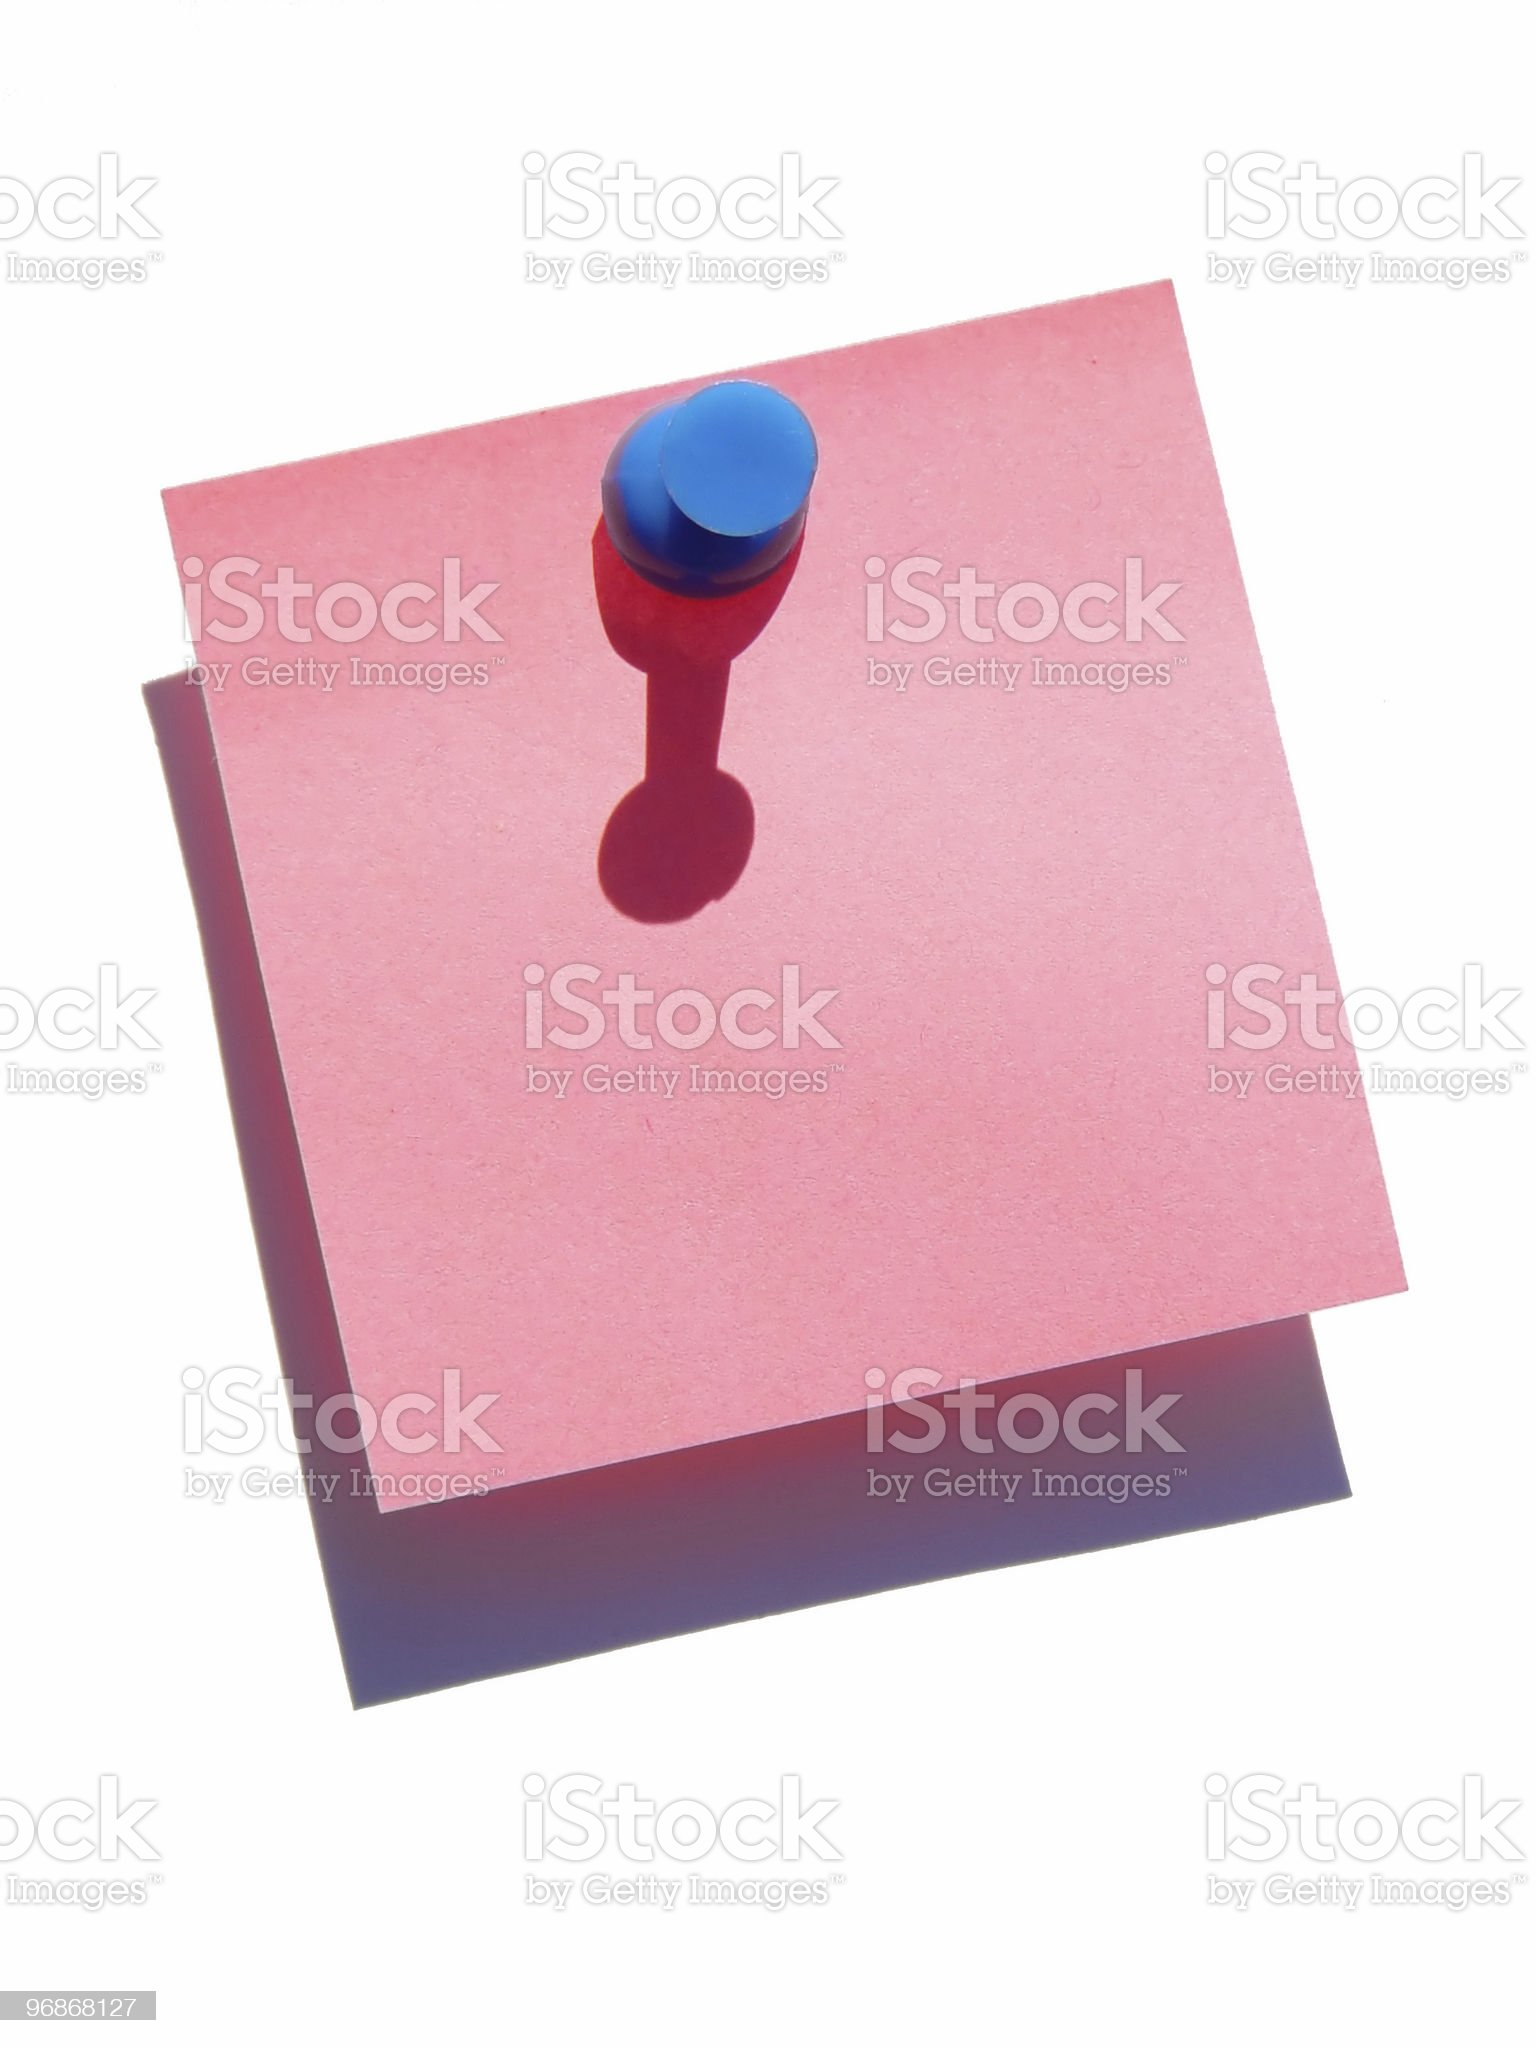 Blank note on white background royalty-free stock photo